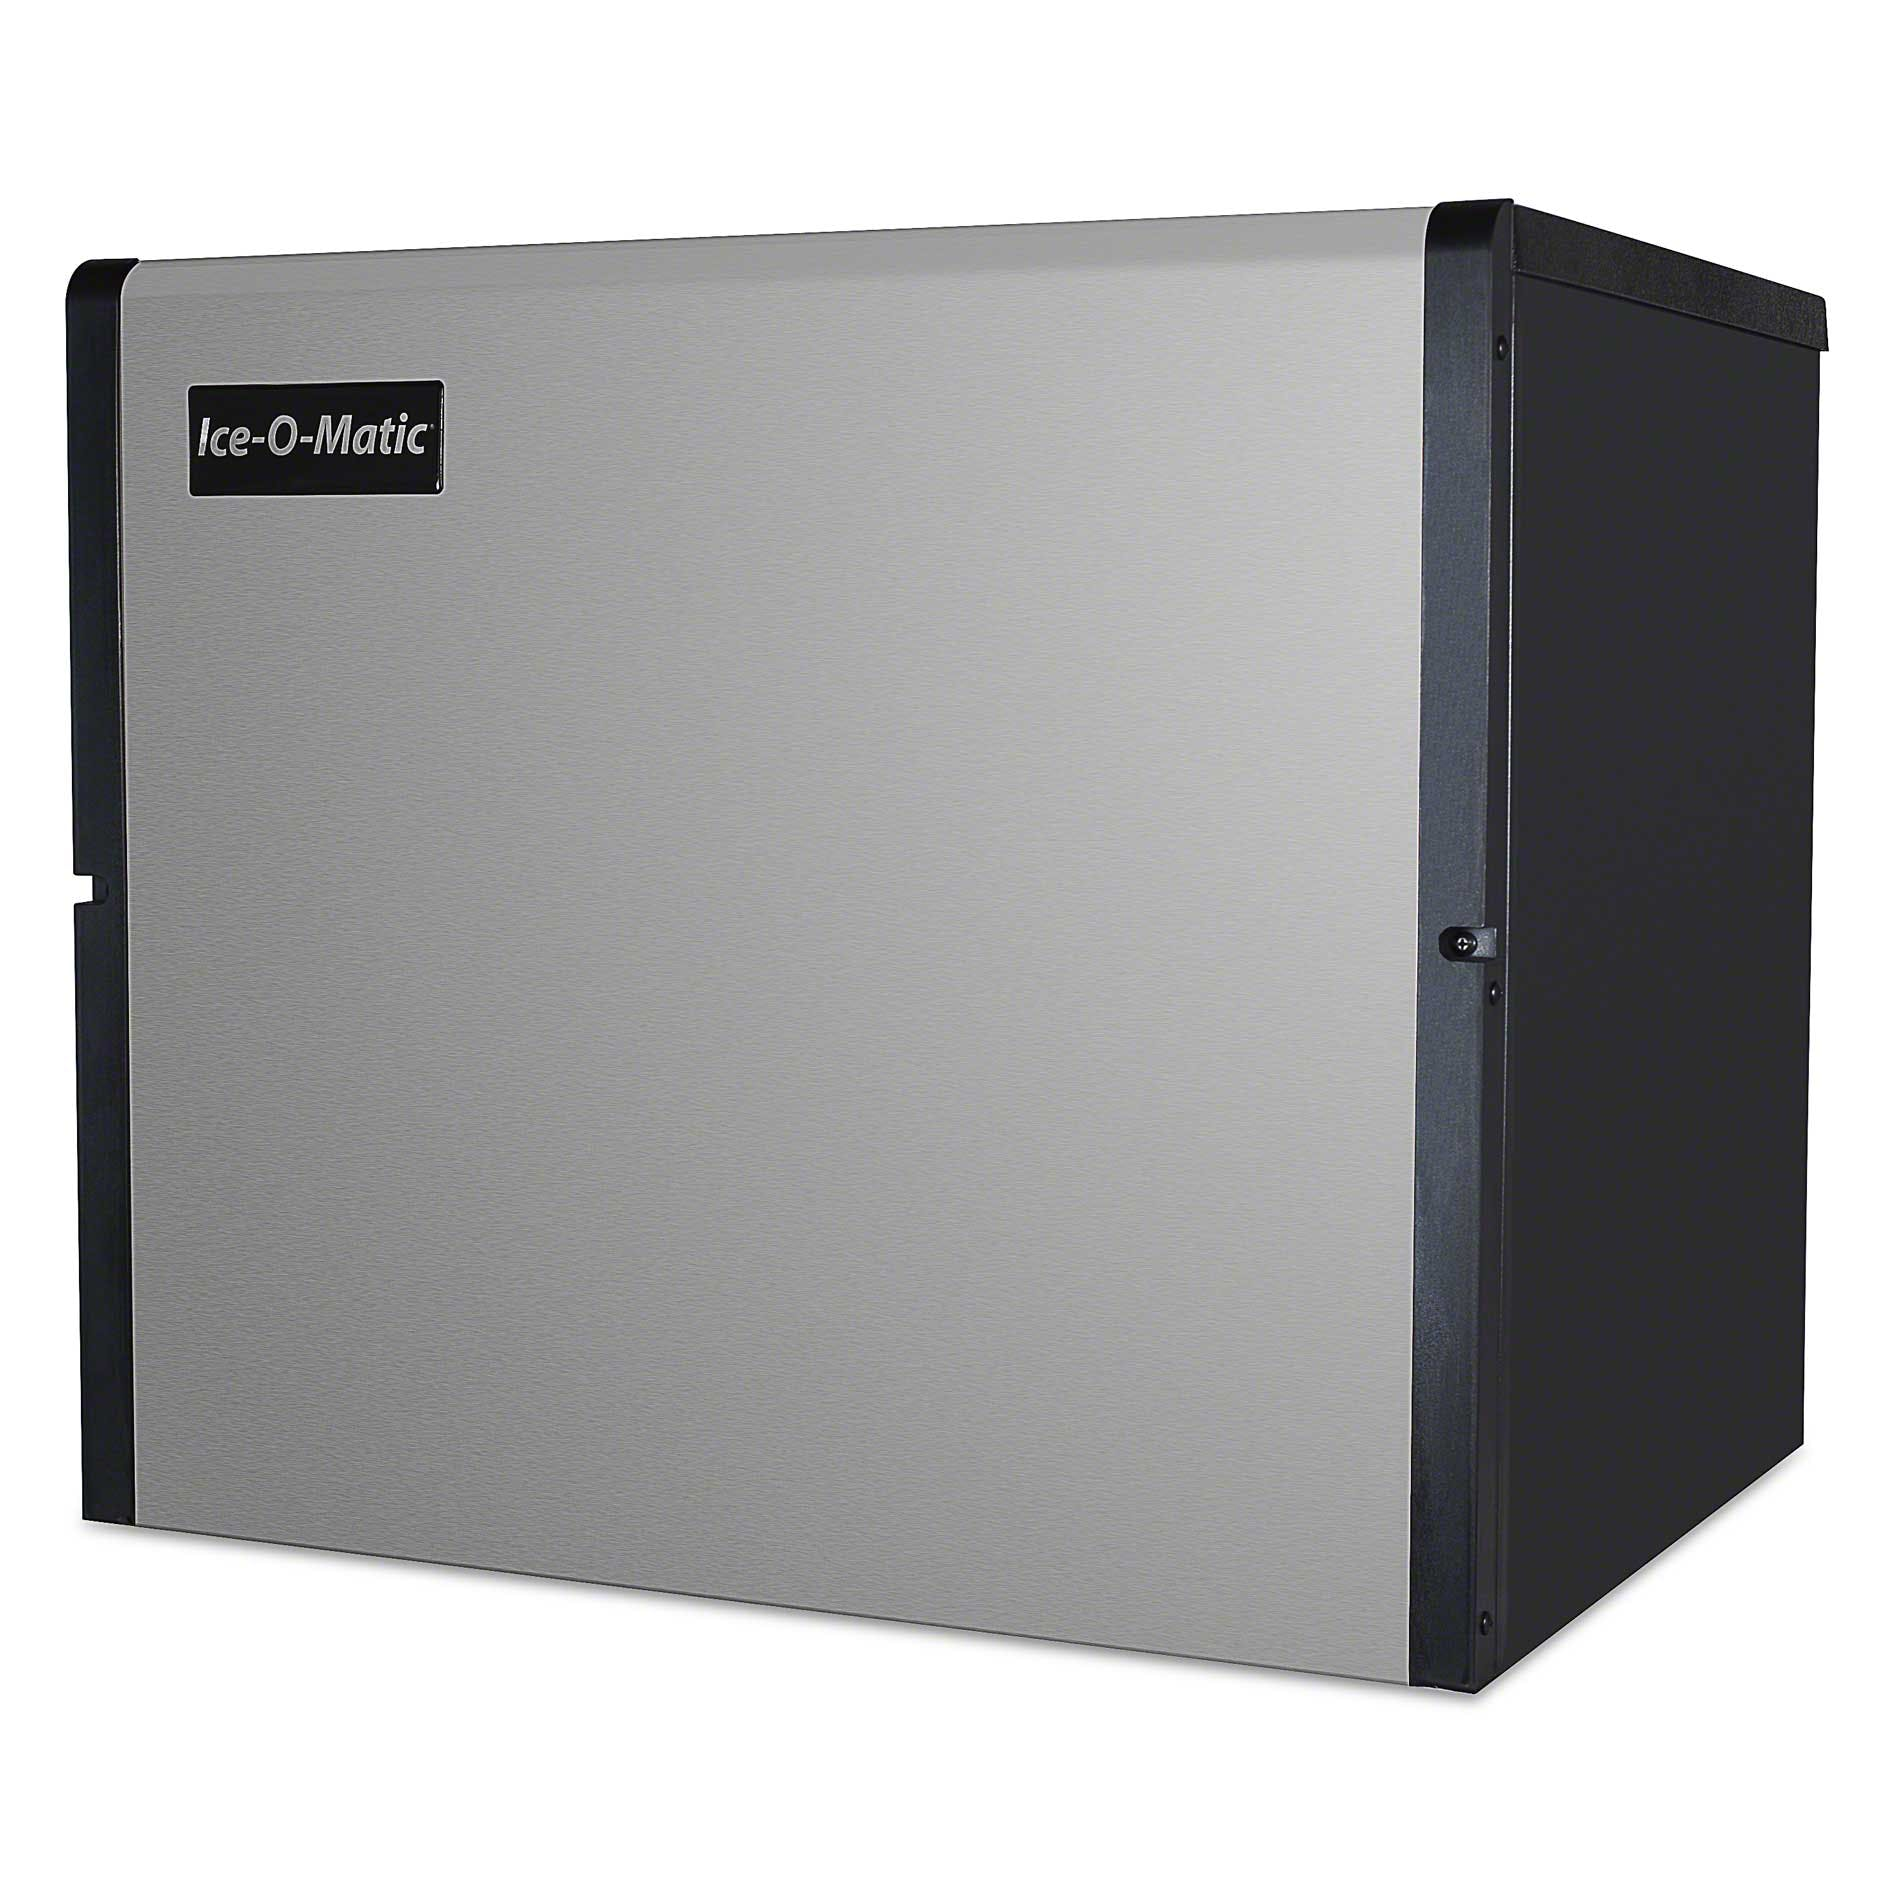 Ice-O-Matic - ICE0806HW 898 lb Half Cube Ice Machine Ice machine sold by Food Service Warehouse